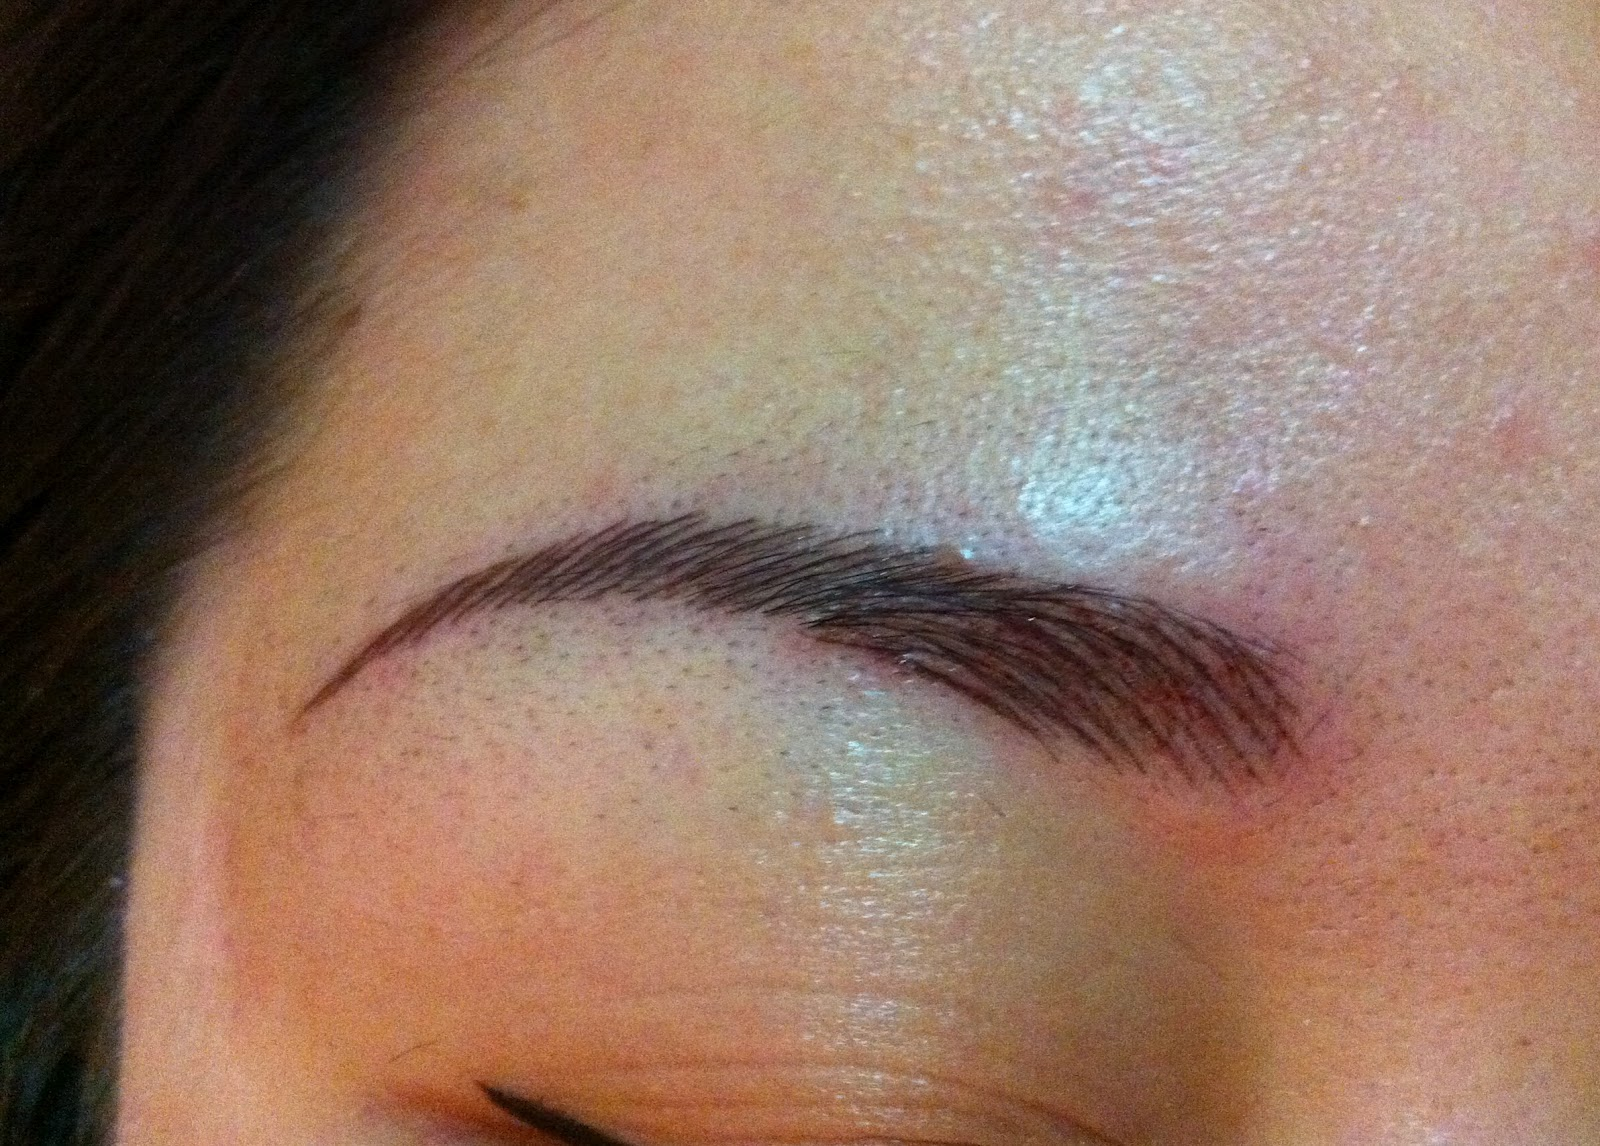 Original eyebrow embroidery photos makaroka